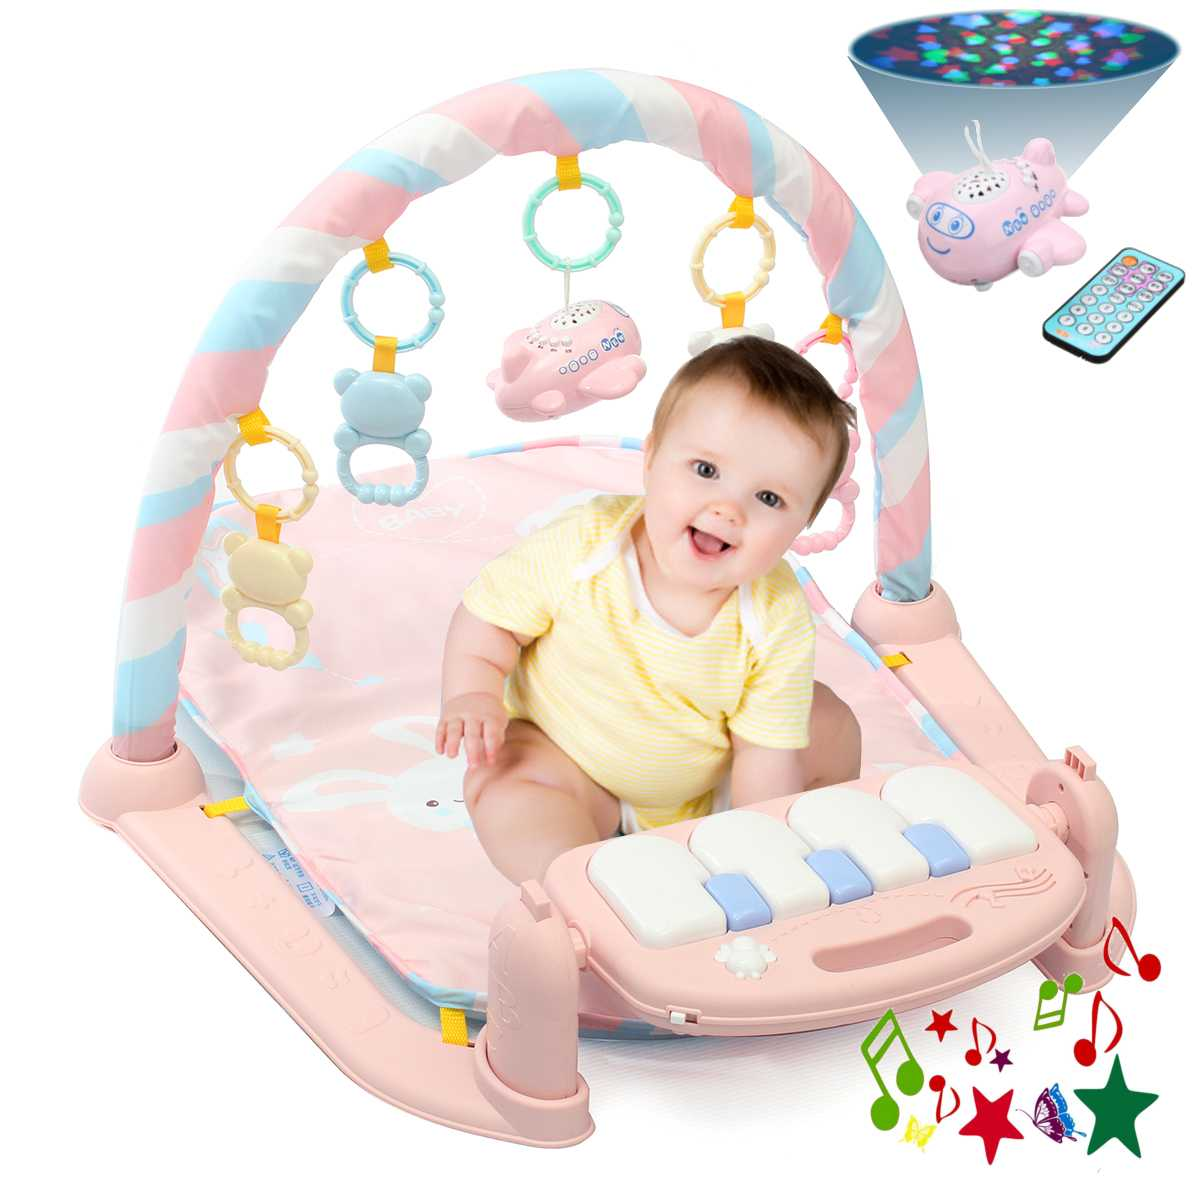 Baby Play Mat Gym 3 in1 Newborn Infant Baby Musical Piano Play Mat Blanket Kids Activity CarpetBaby Play Mat Gym 3 in1 Newborn Infant Baby Musical Piano Play Mat Blanket Kids Activity Carpet